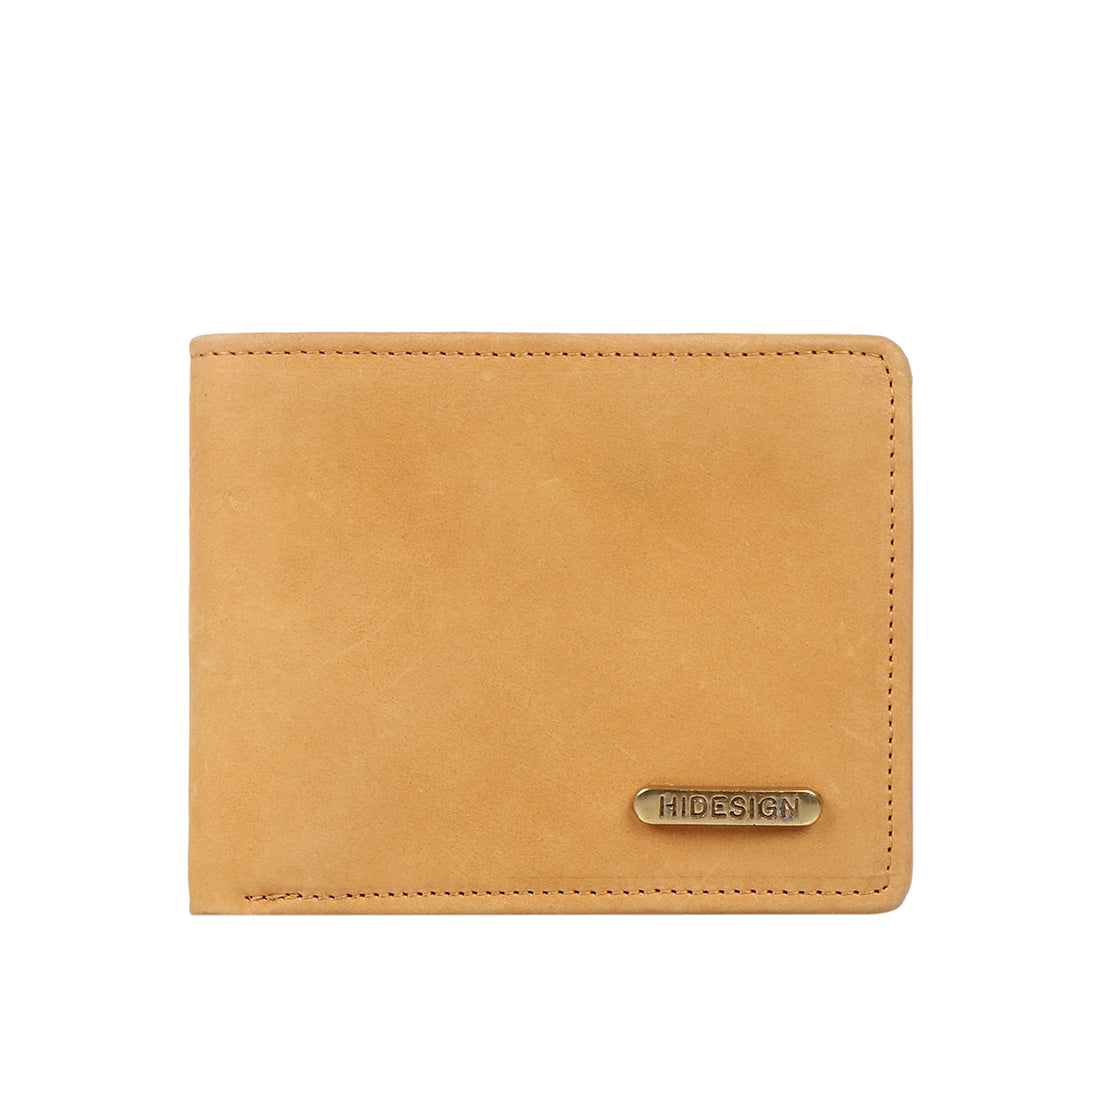 387-036 Bi-Fold Wallet (Tan) Camel Leather